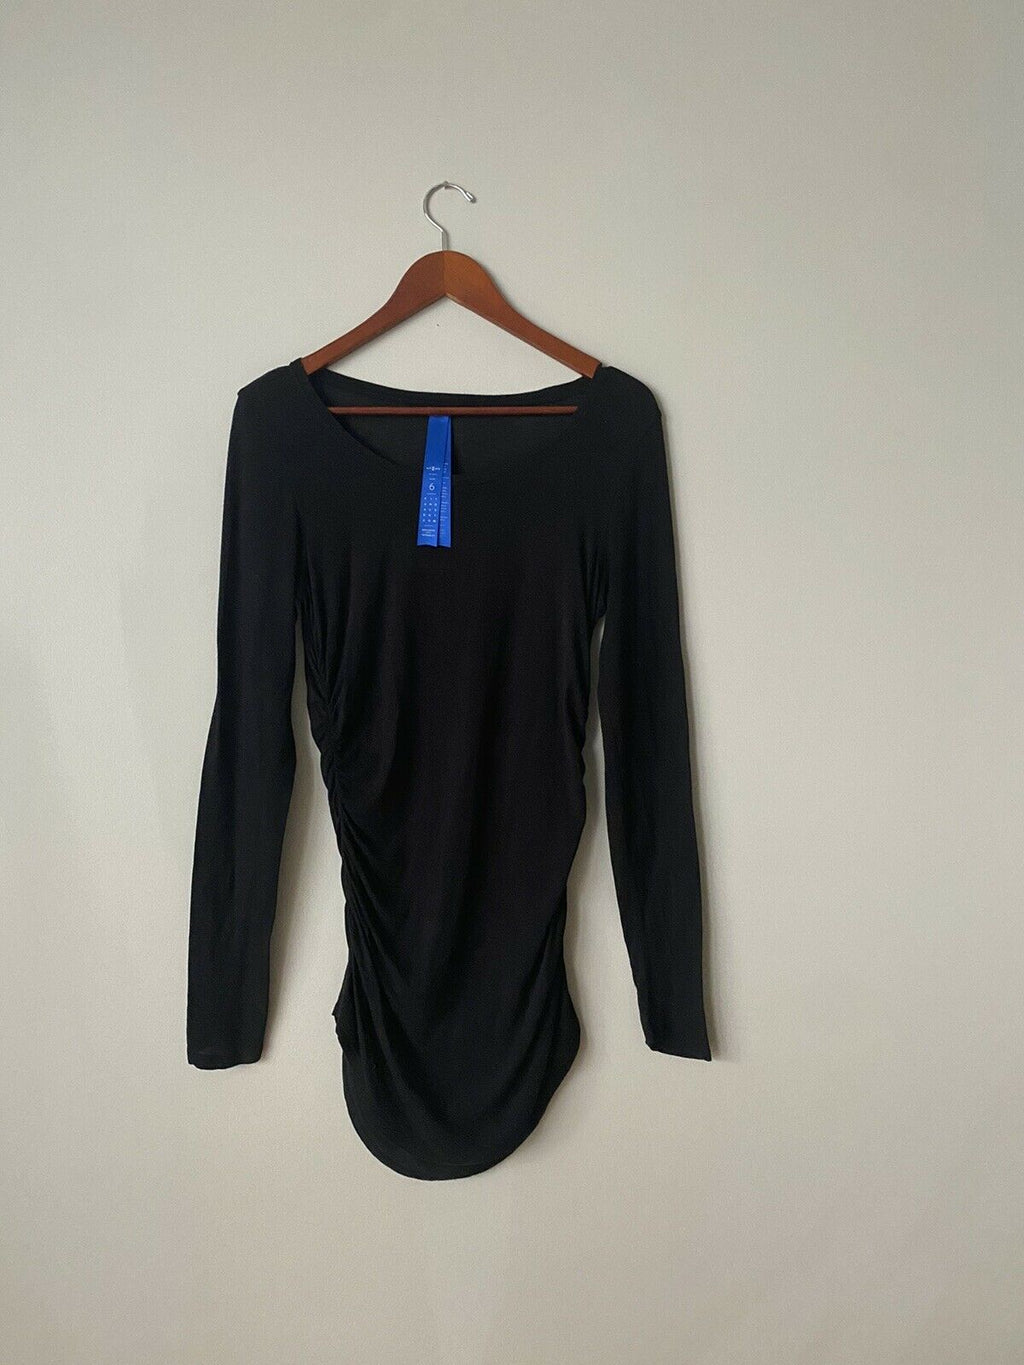 Kit and Ace Women's Size 6 Small Black Shirt Long Sleeve Ruched Side Tunic Top